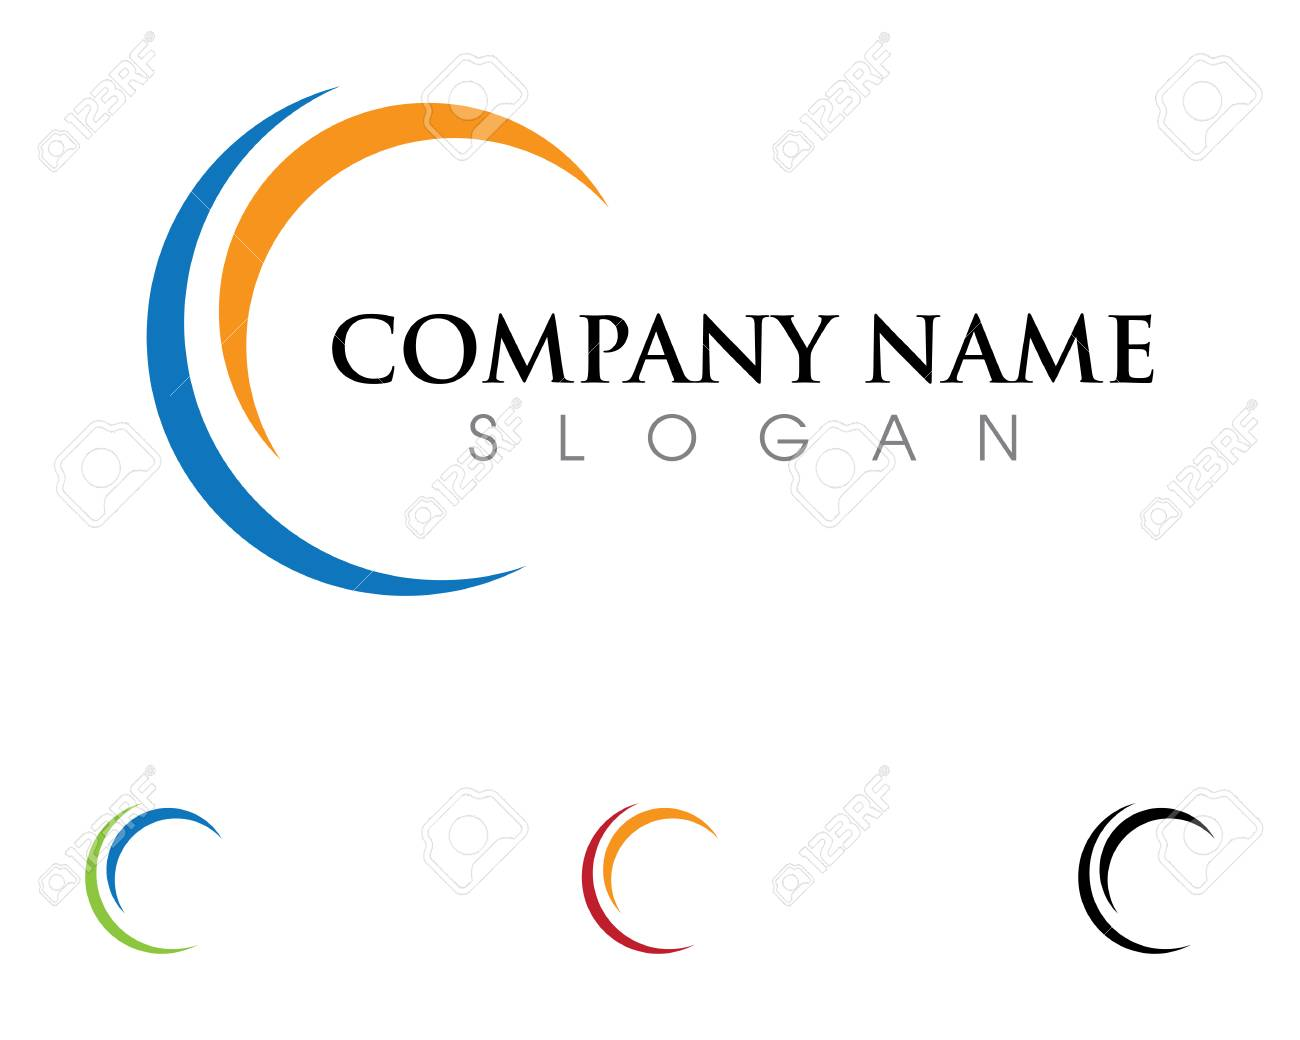 c letter logo template vector icon design royalty free cliparts